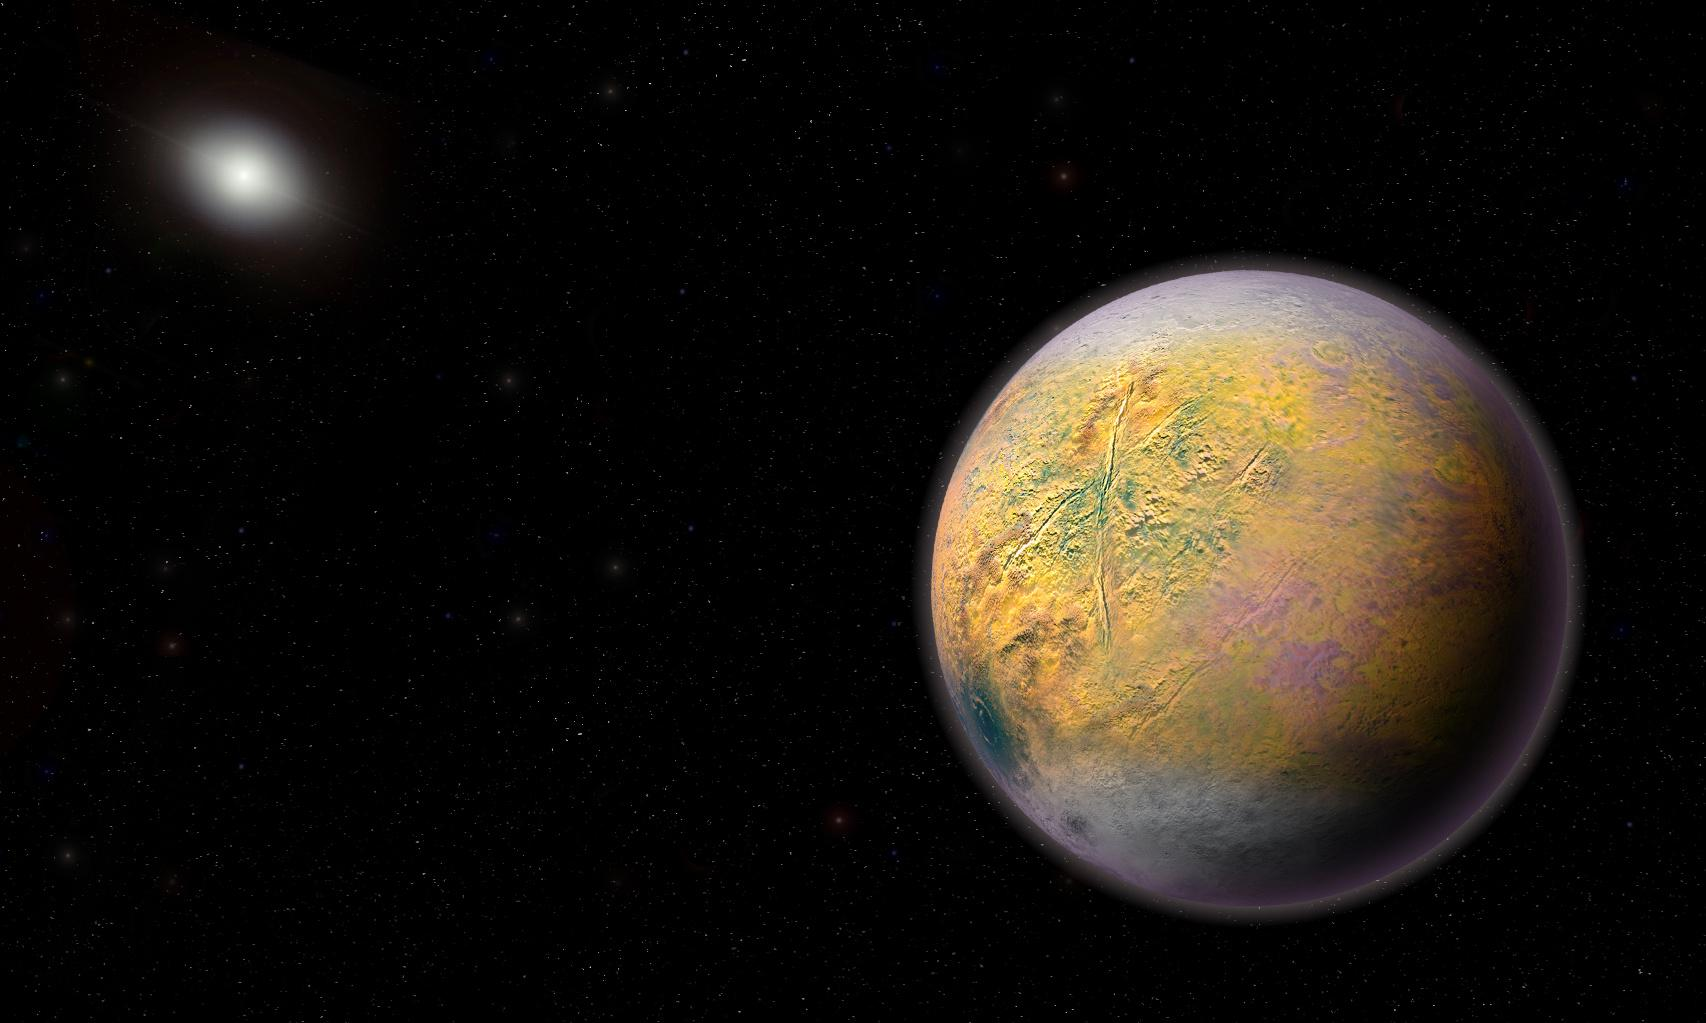 Dwarf planet 'The Goblin' discovery redefining solar system